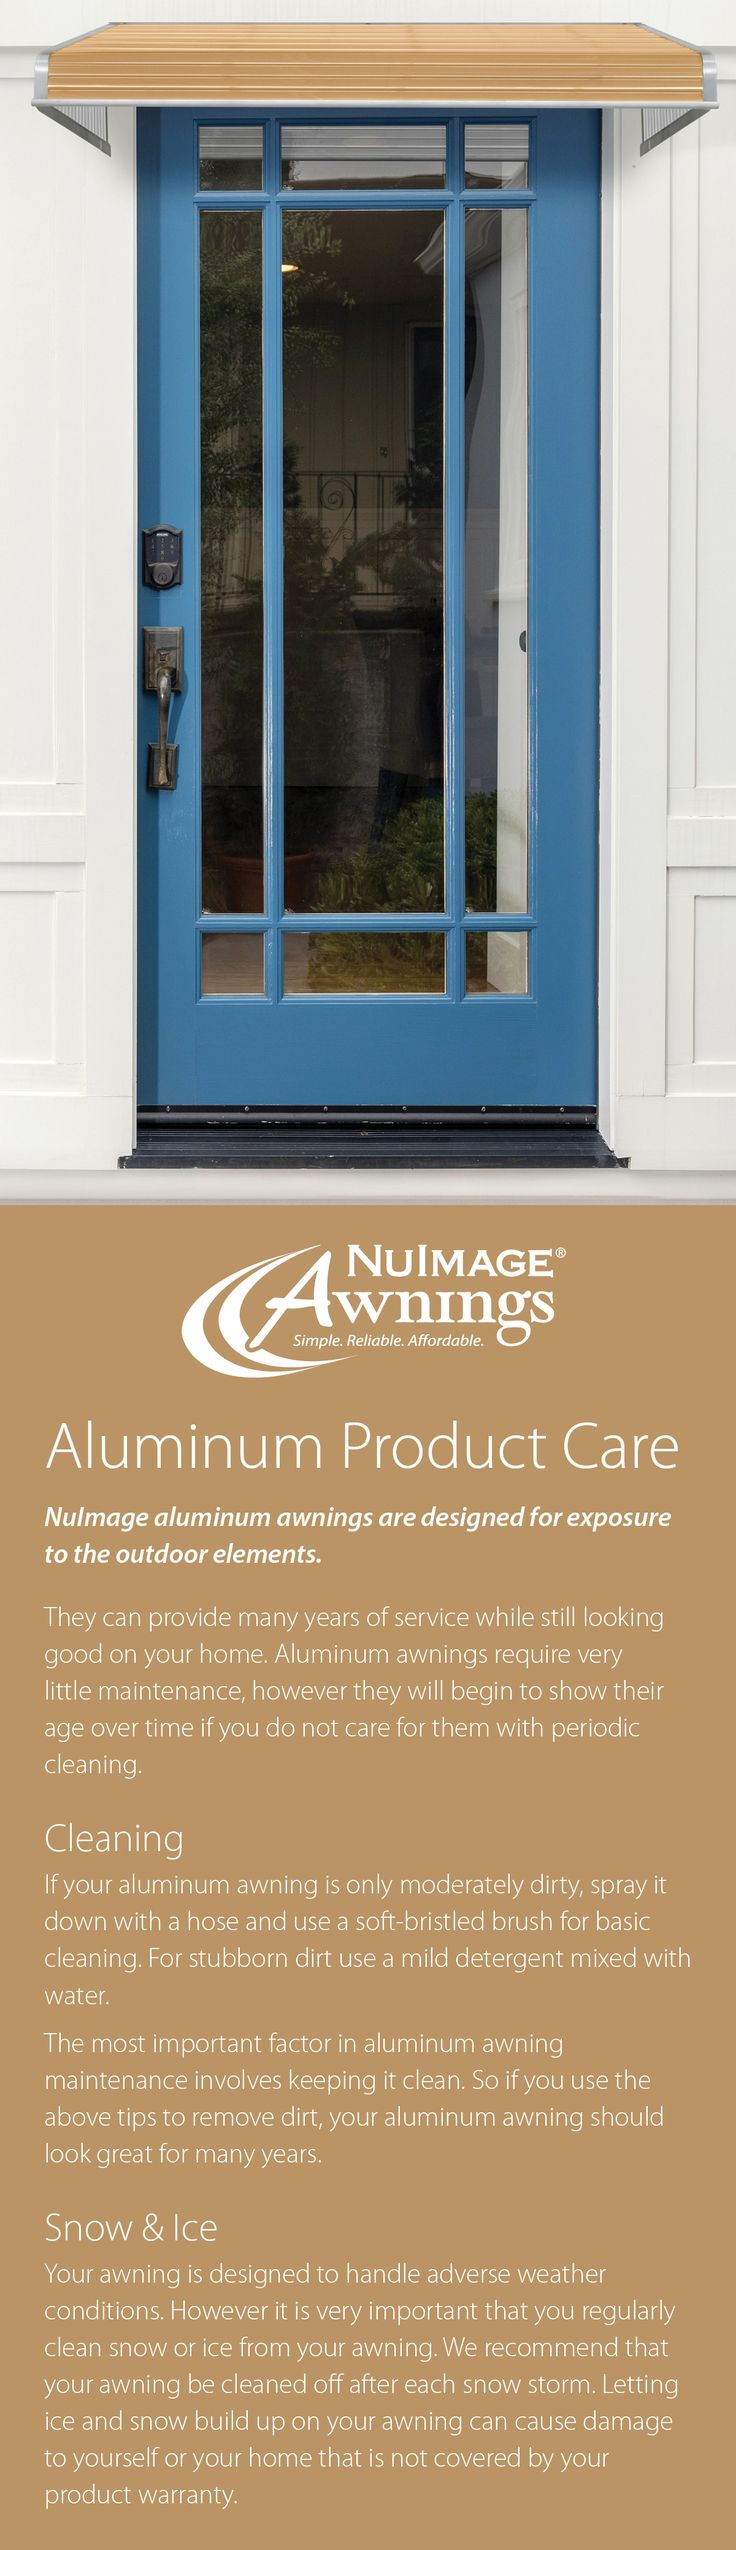 NuImage aluminum awnings are designed for exposure to the outdoor elements, but they still require minimal care. Follow these tips to extend the life of your awning!